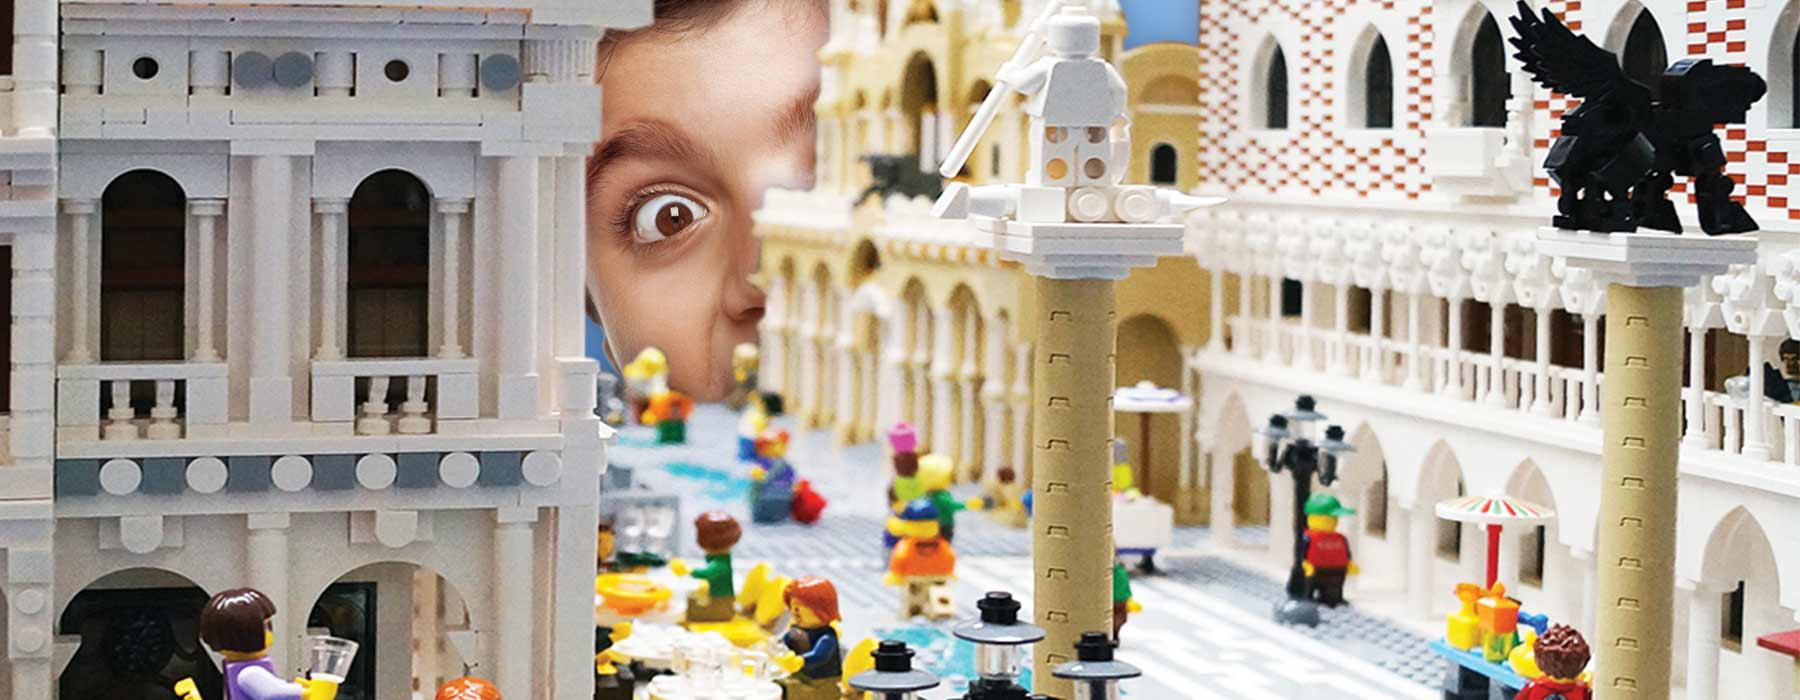 Let's Go Build: A Festival for LEGO Lovers   Te Papa